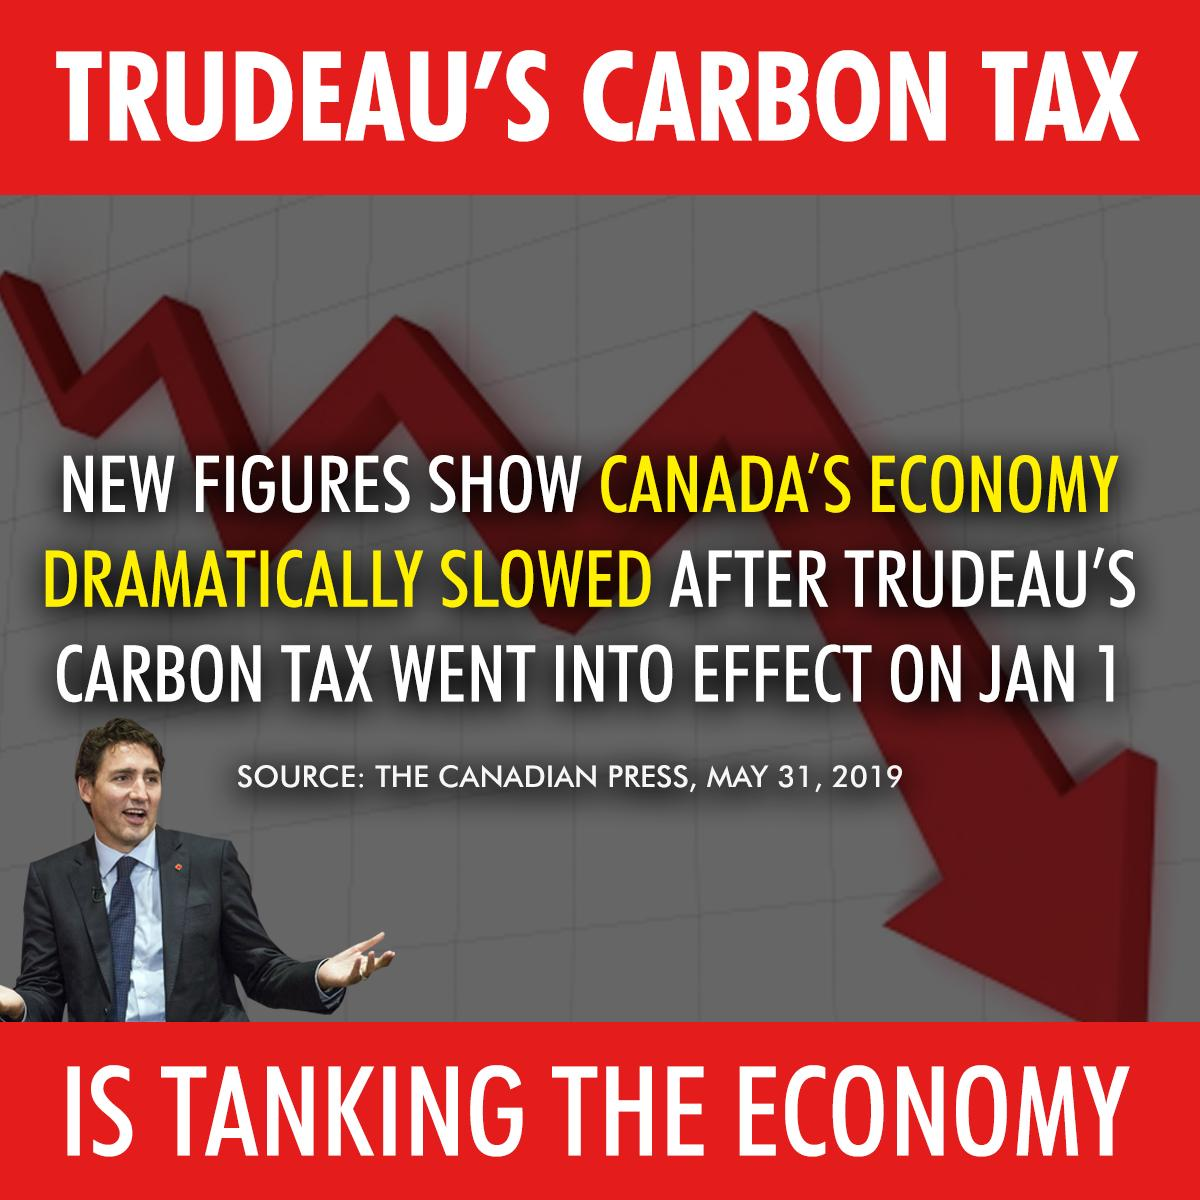 #BREAKING Trudeau's carbon tax is taking a toll on the economy. We just had the slowest economic growth since Trudeau was elected.  It's time to repeal the carbon tax and replace @JustinTrudeau #RepealAndReplace <br>http://pic.twitter.com/0AaZaIZKkx